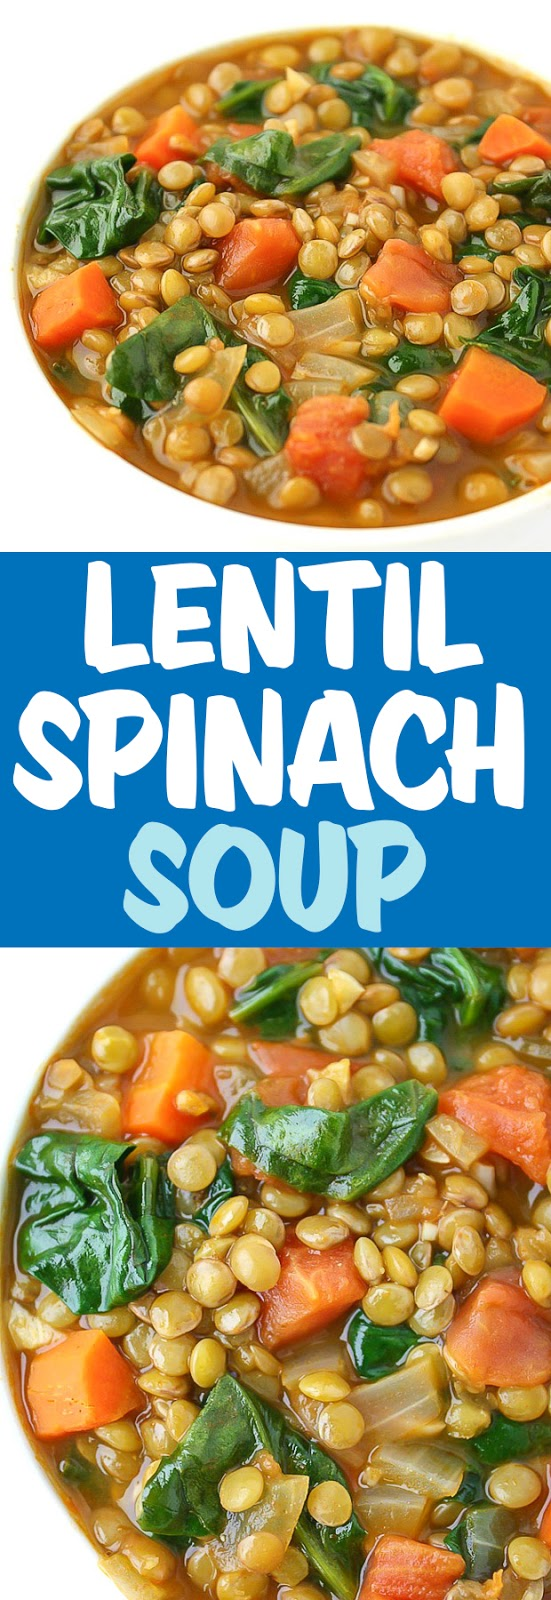 photo collage of lentil spinach soup